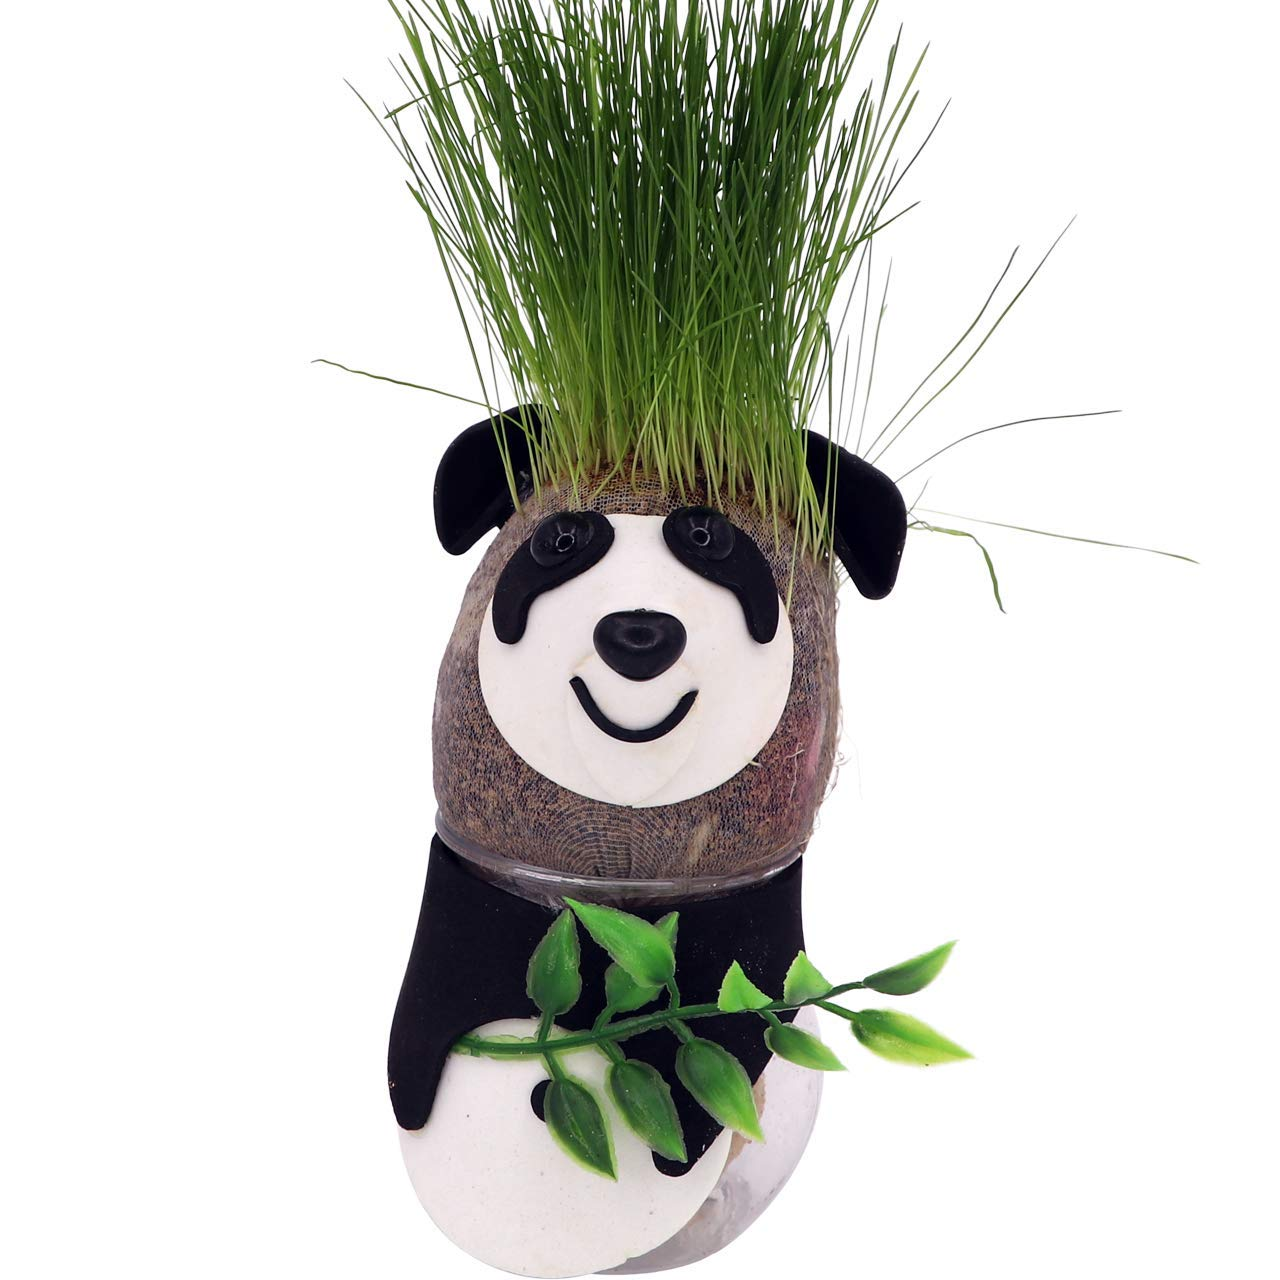 Grass Head - Funny Fast Growing Grass Head Learning Toy for Kids by AvoSeedo (Cat)